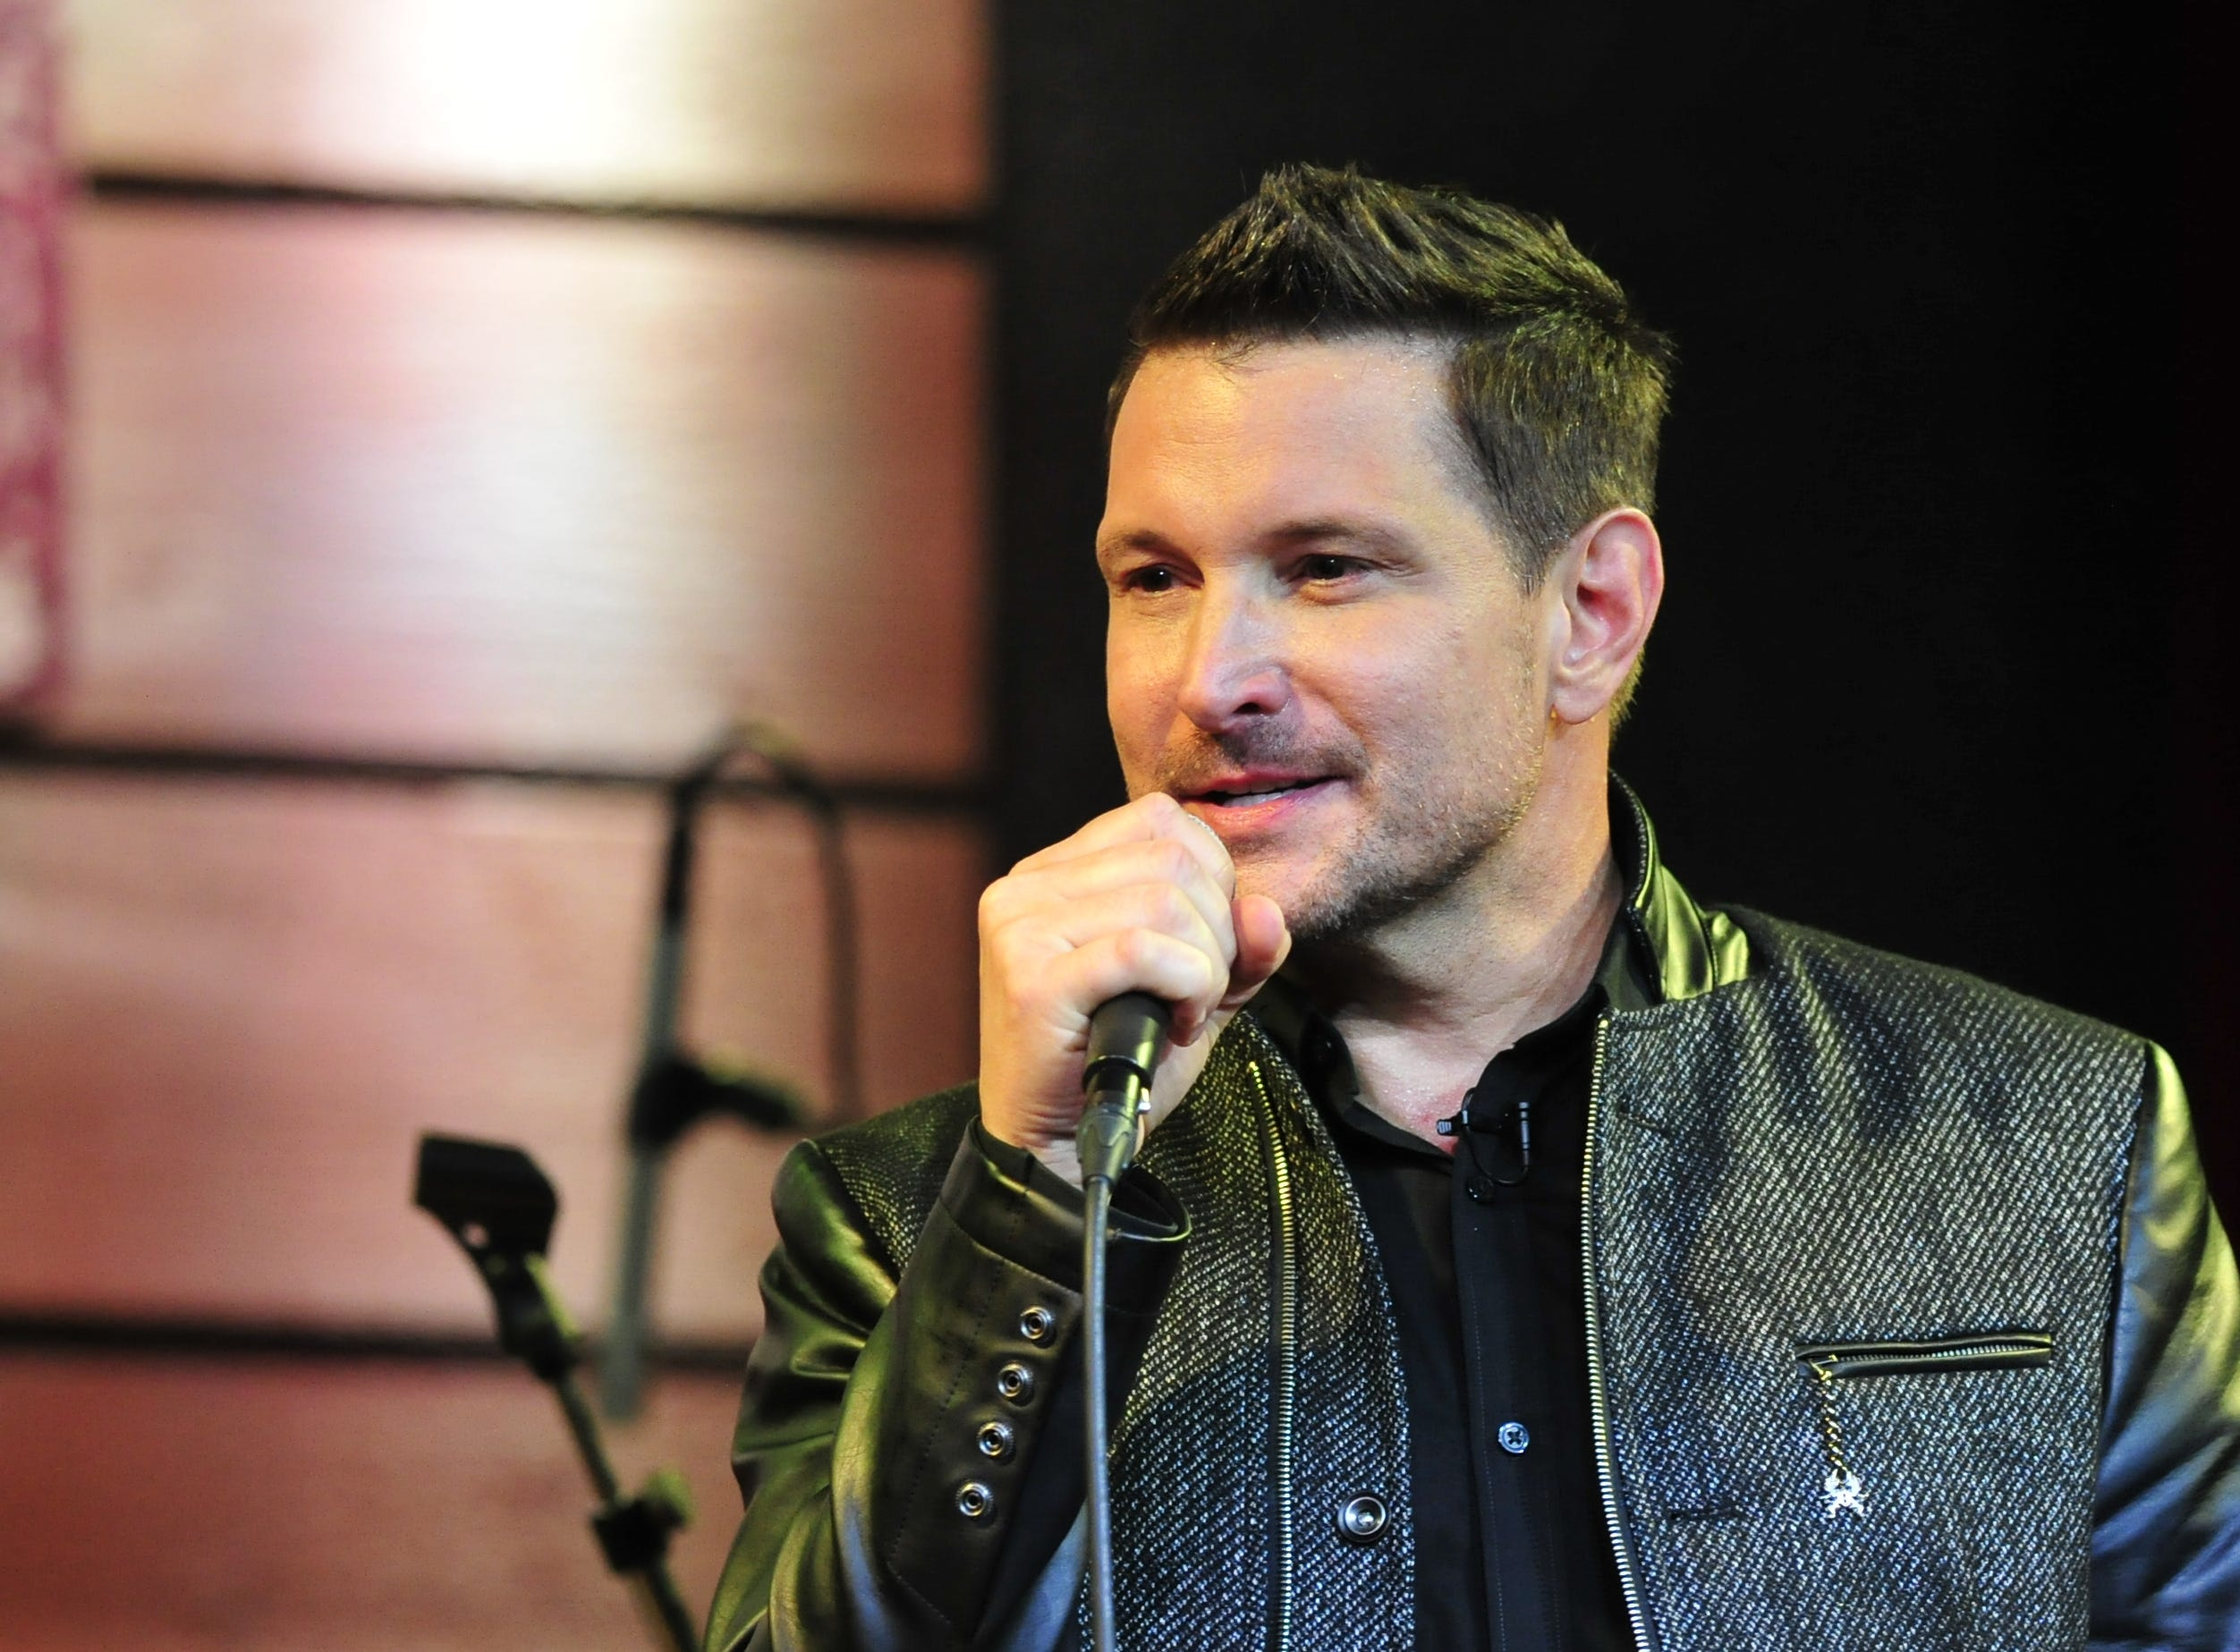 Ty Herndon is scheduled to play the Budweiser Forever Country Stage at CMA Fest 2019.